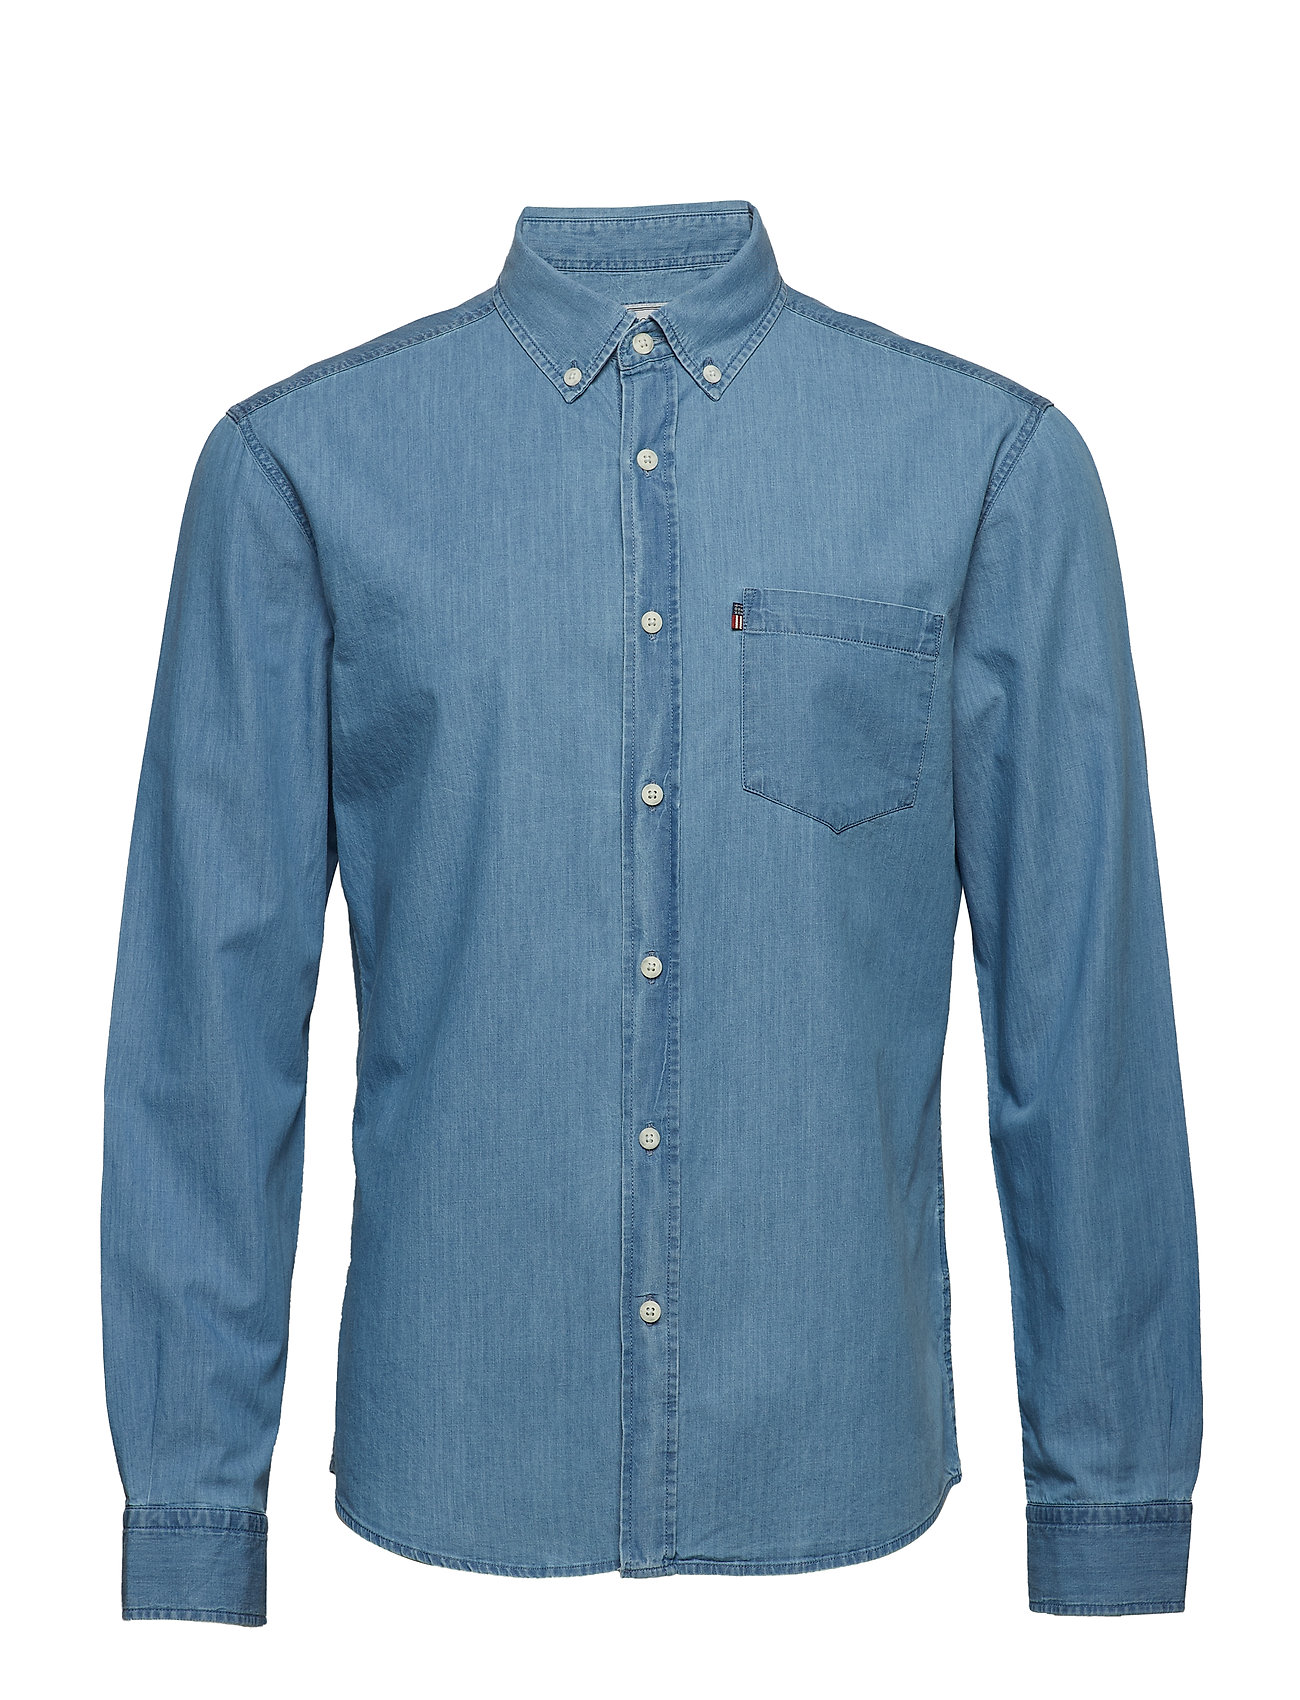 Lexington Clothing Clive Denim Shirt Ögrönlar